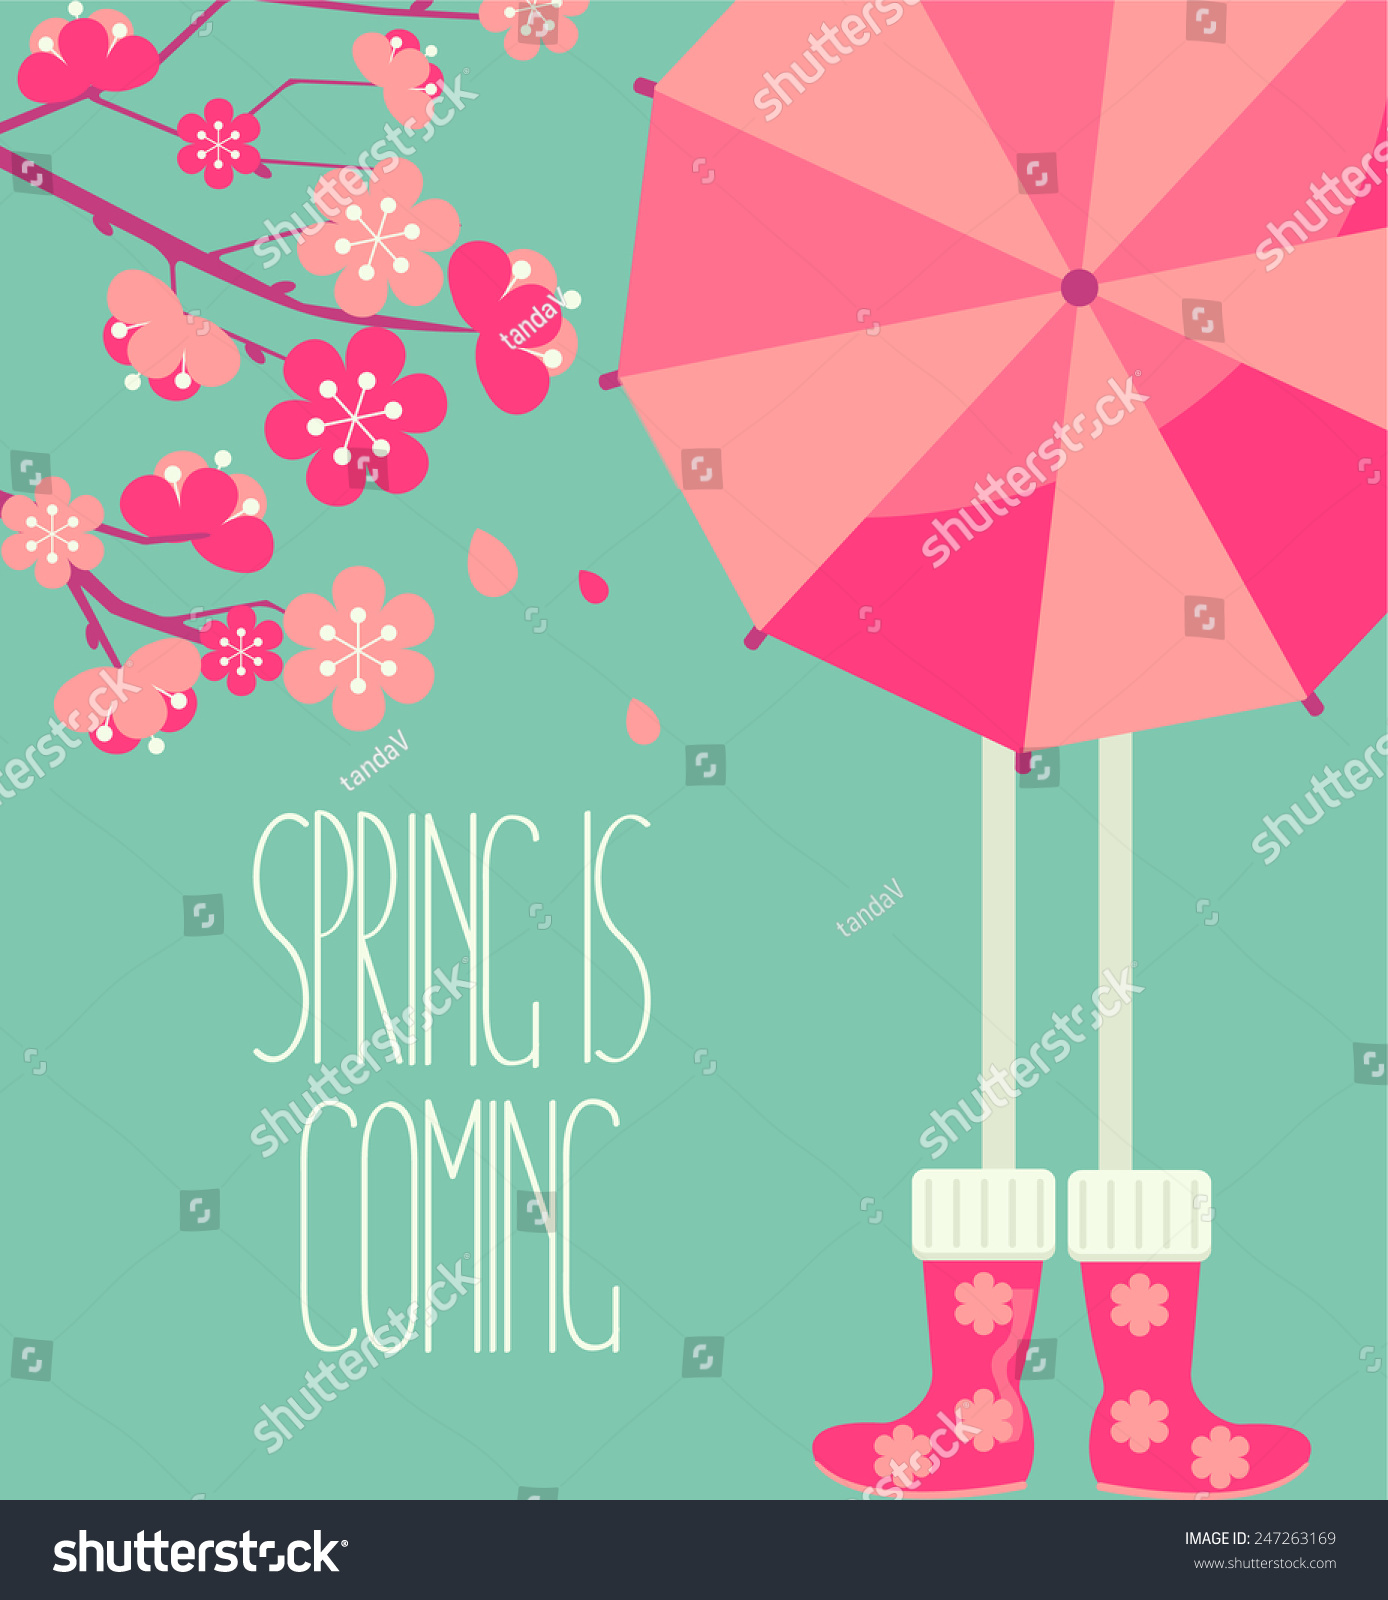 Vector illustration of a spring season in flat style cherry blossoms and people with a bright umbrella and boots with the inscription made by hand the Spring is coming